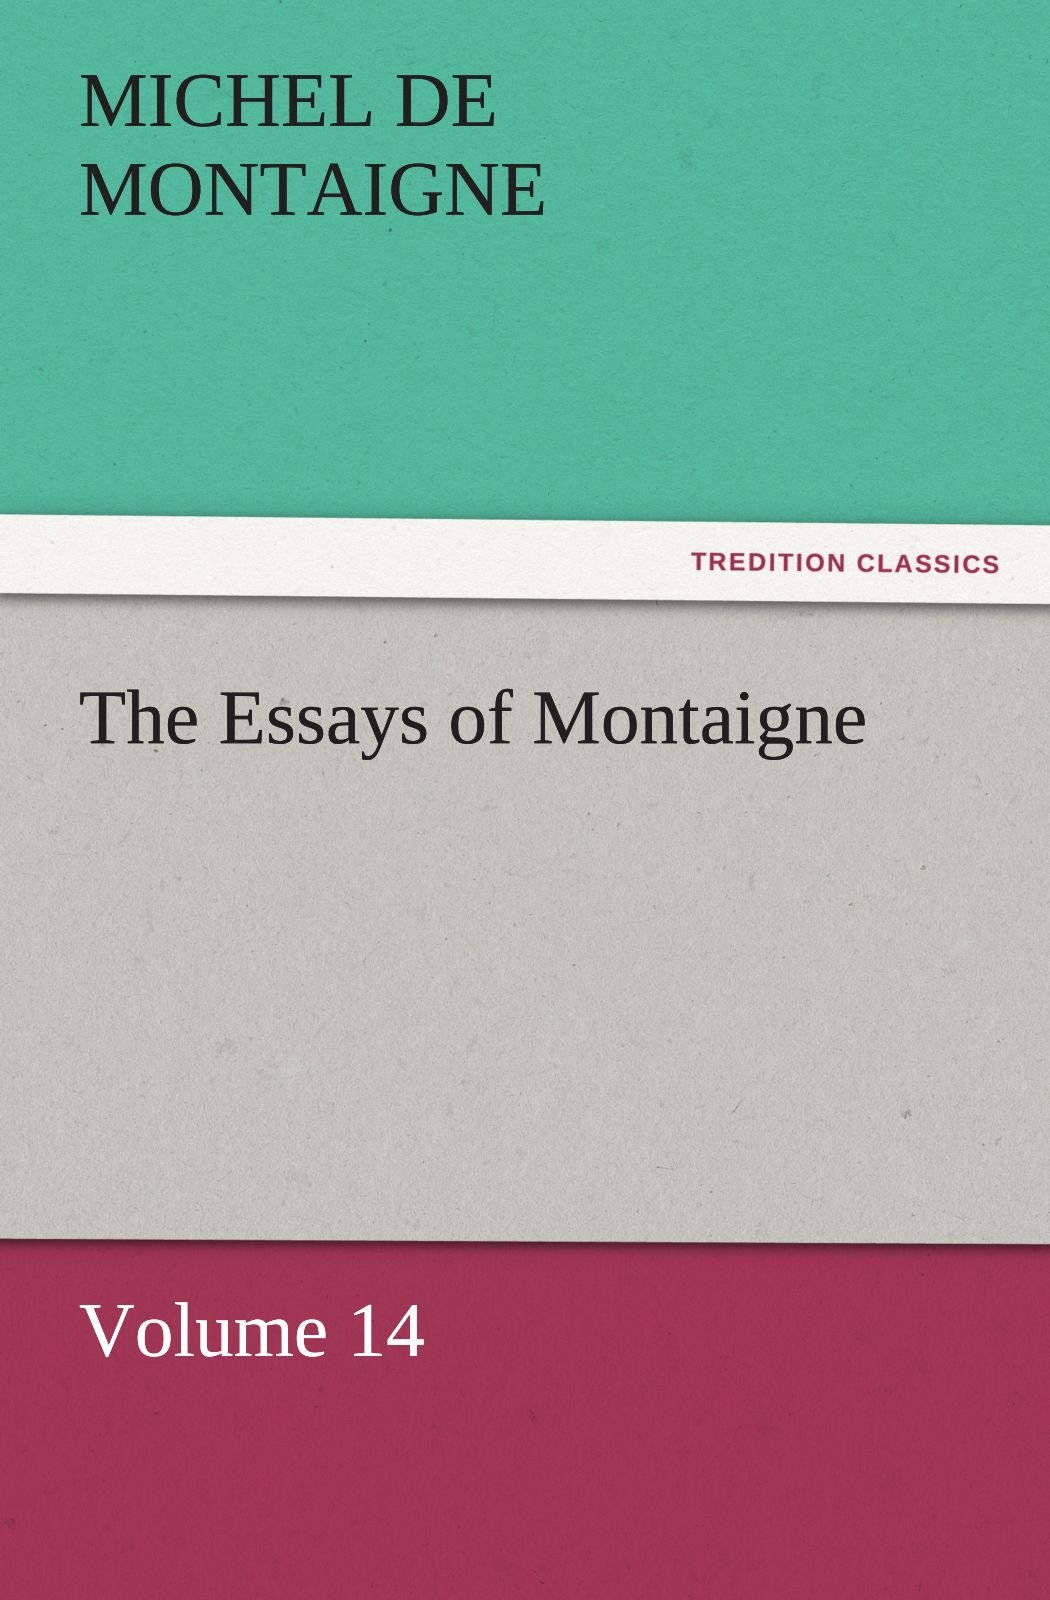 Download The Essays of Montaigne — Volume 14 (TREDITION CLASSICS) pdf